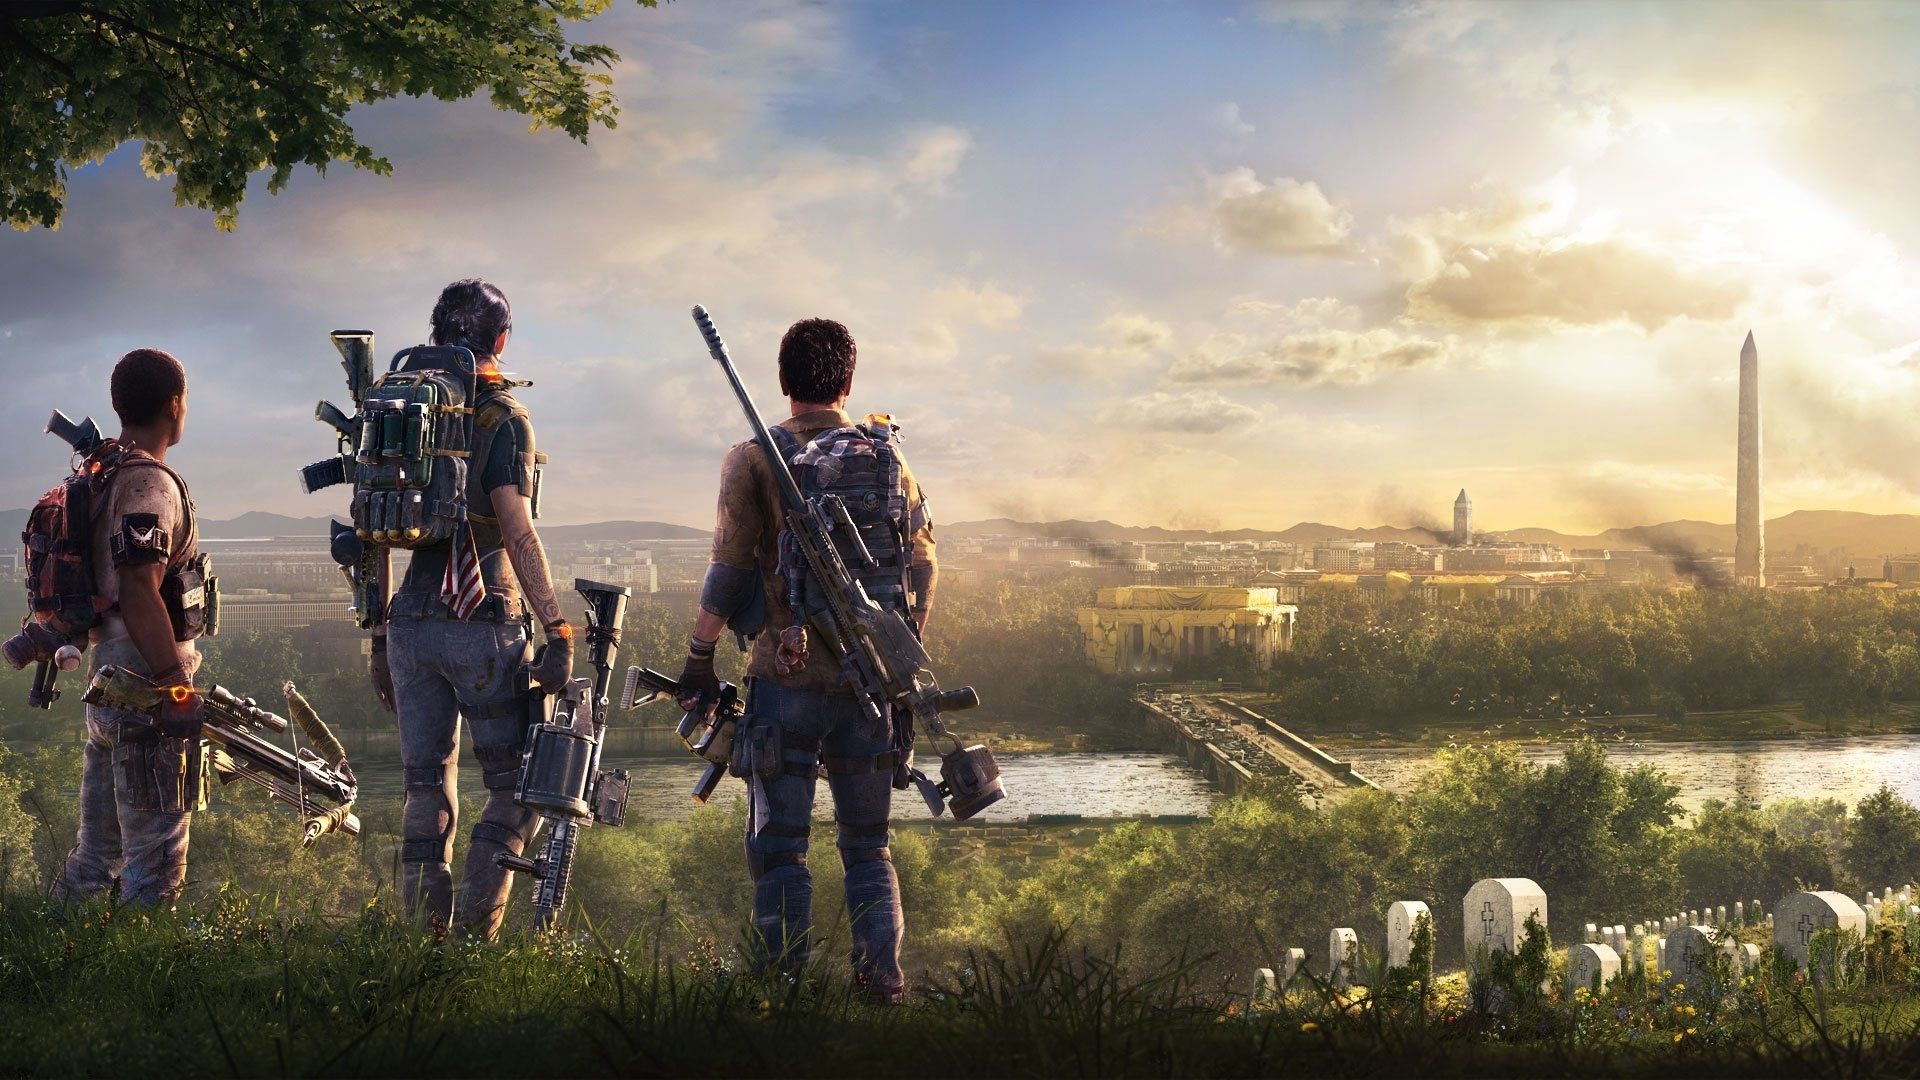 The Division 2 Update 1 05 Patch Notes Reveal Changes to